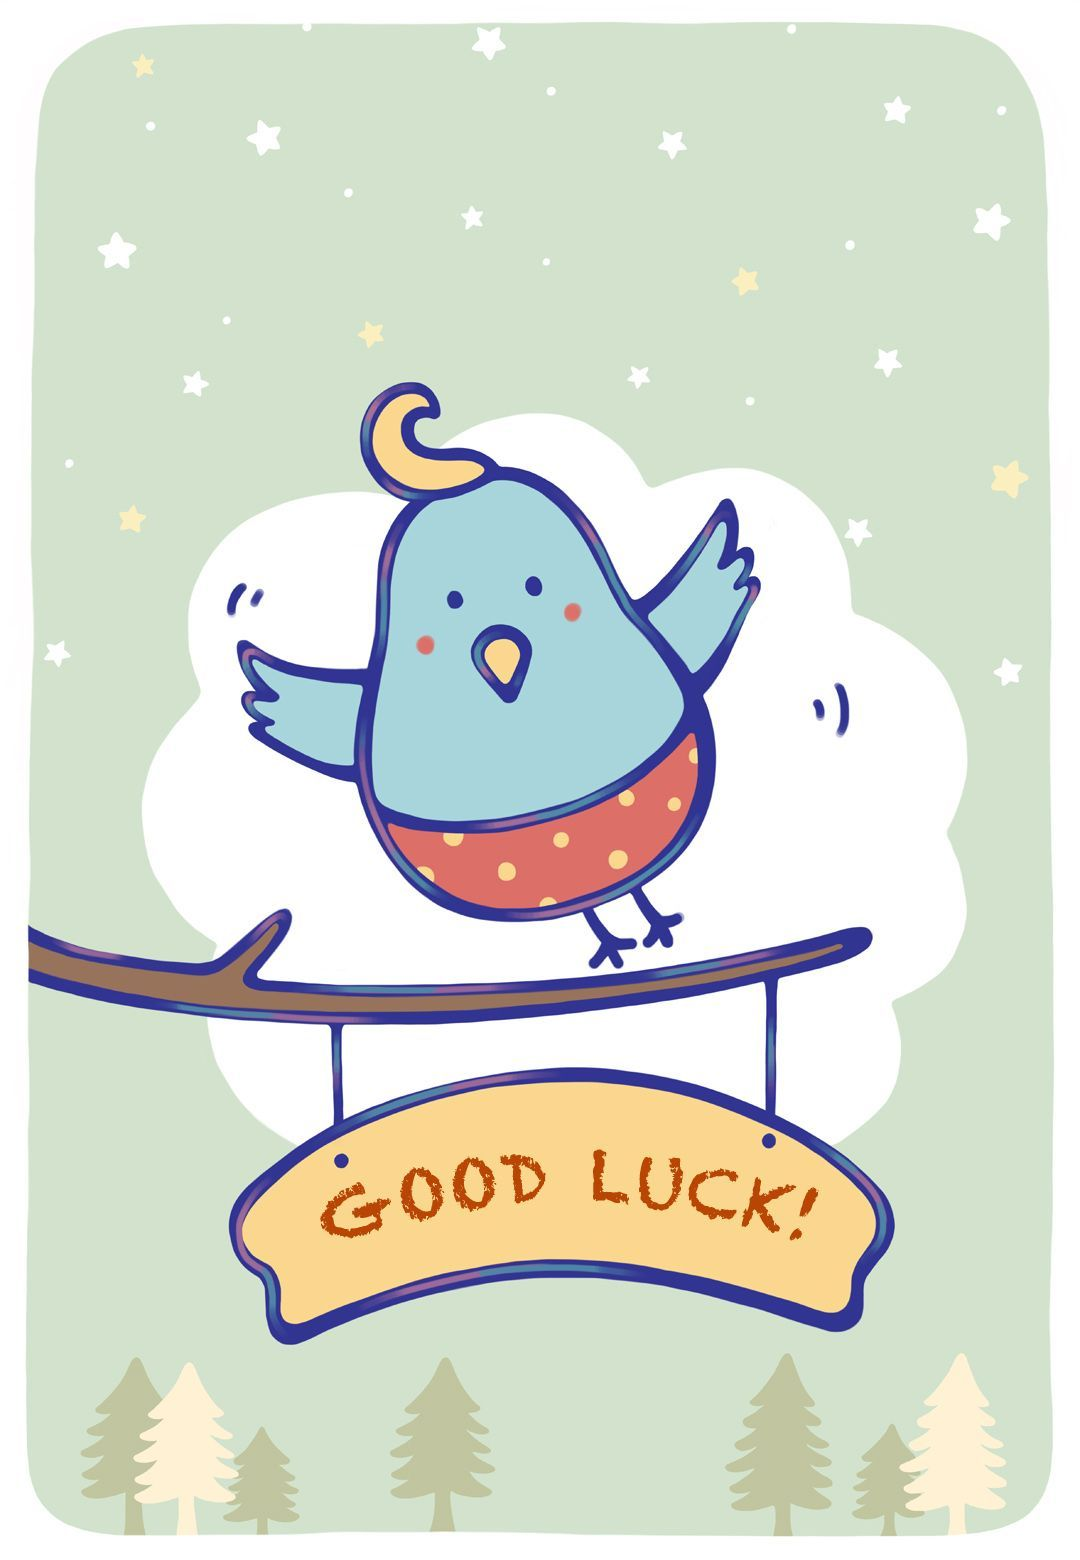 Free Printable Bluebird Of Happiness Greeting Card With Good Luck Card Template Cumed Org Good Luck Cards Greeting Card Image Card Template